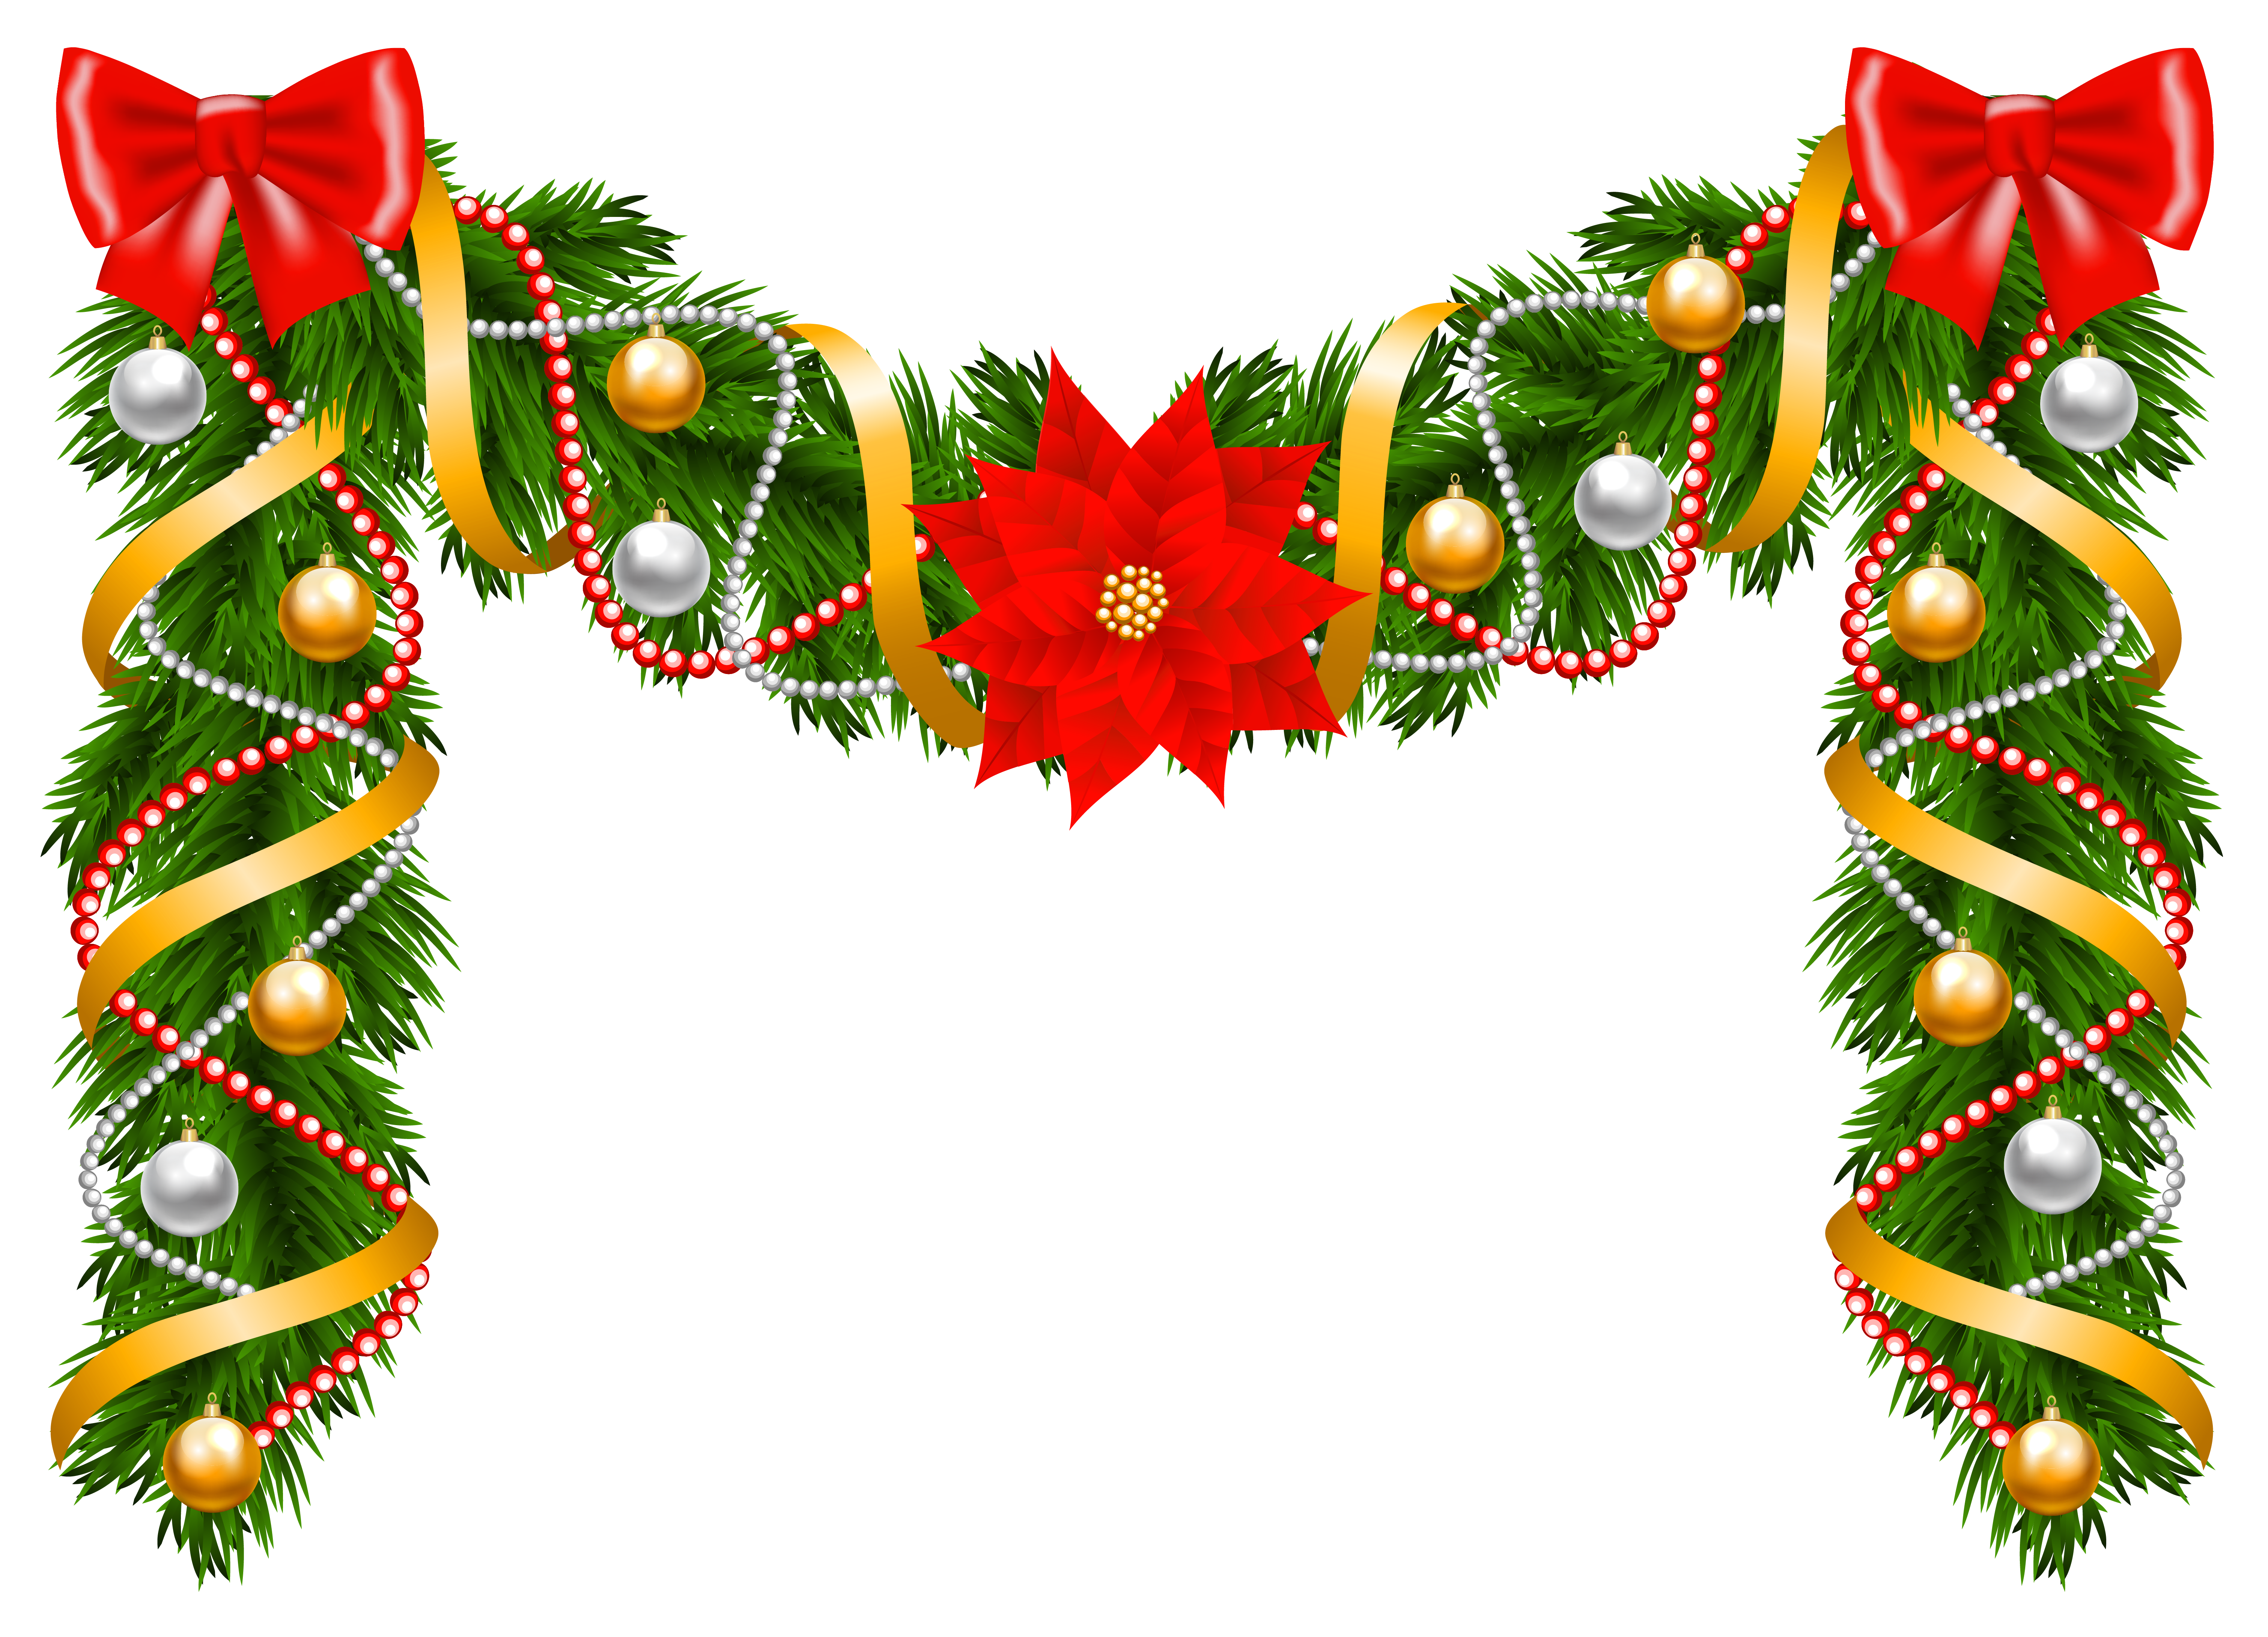 Garland clipart library. Christmas deco png image